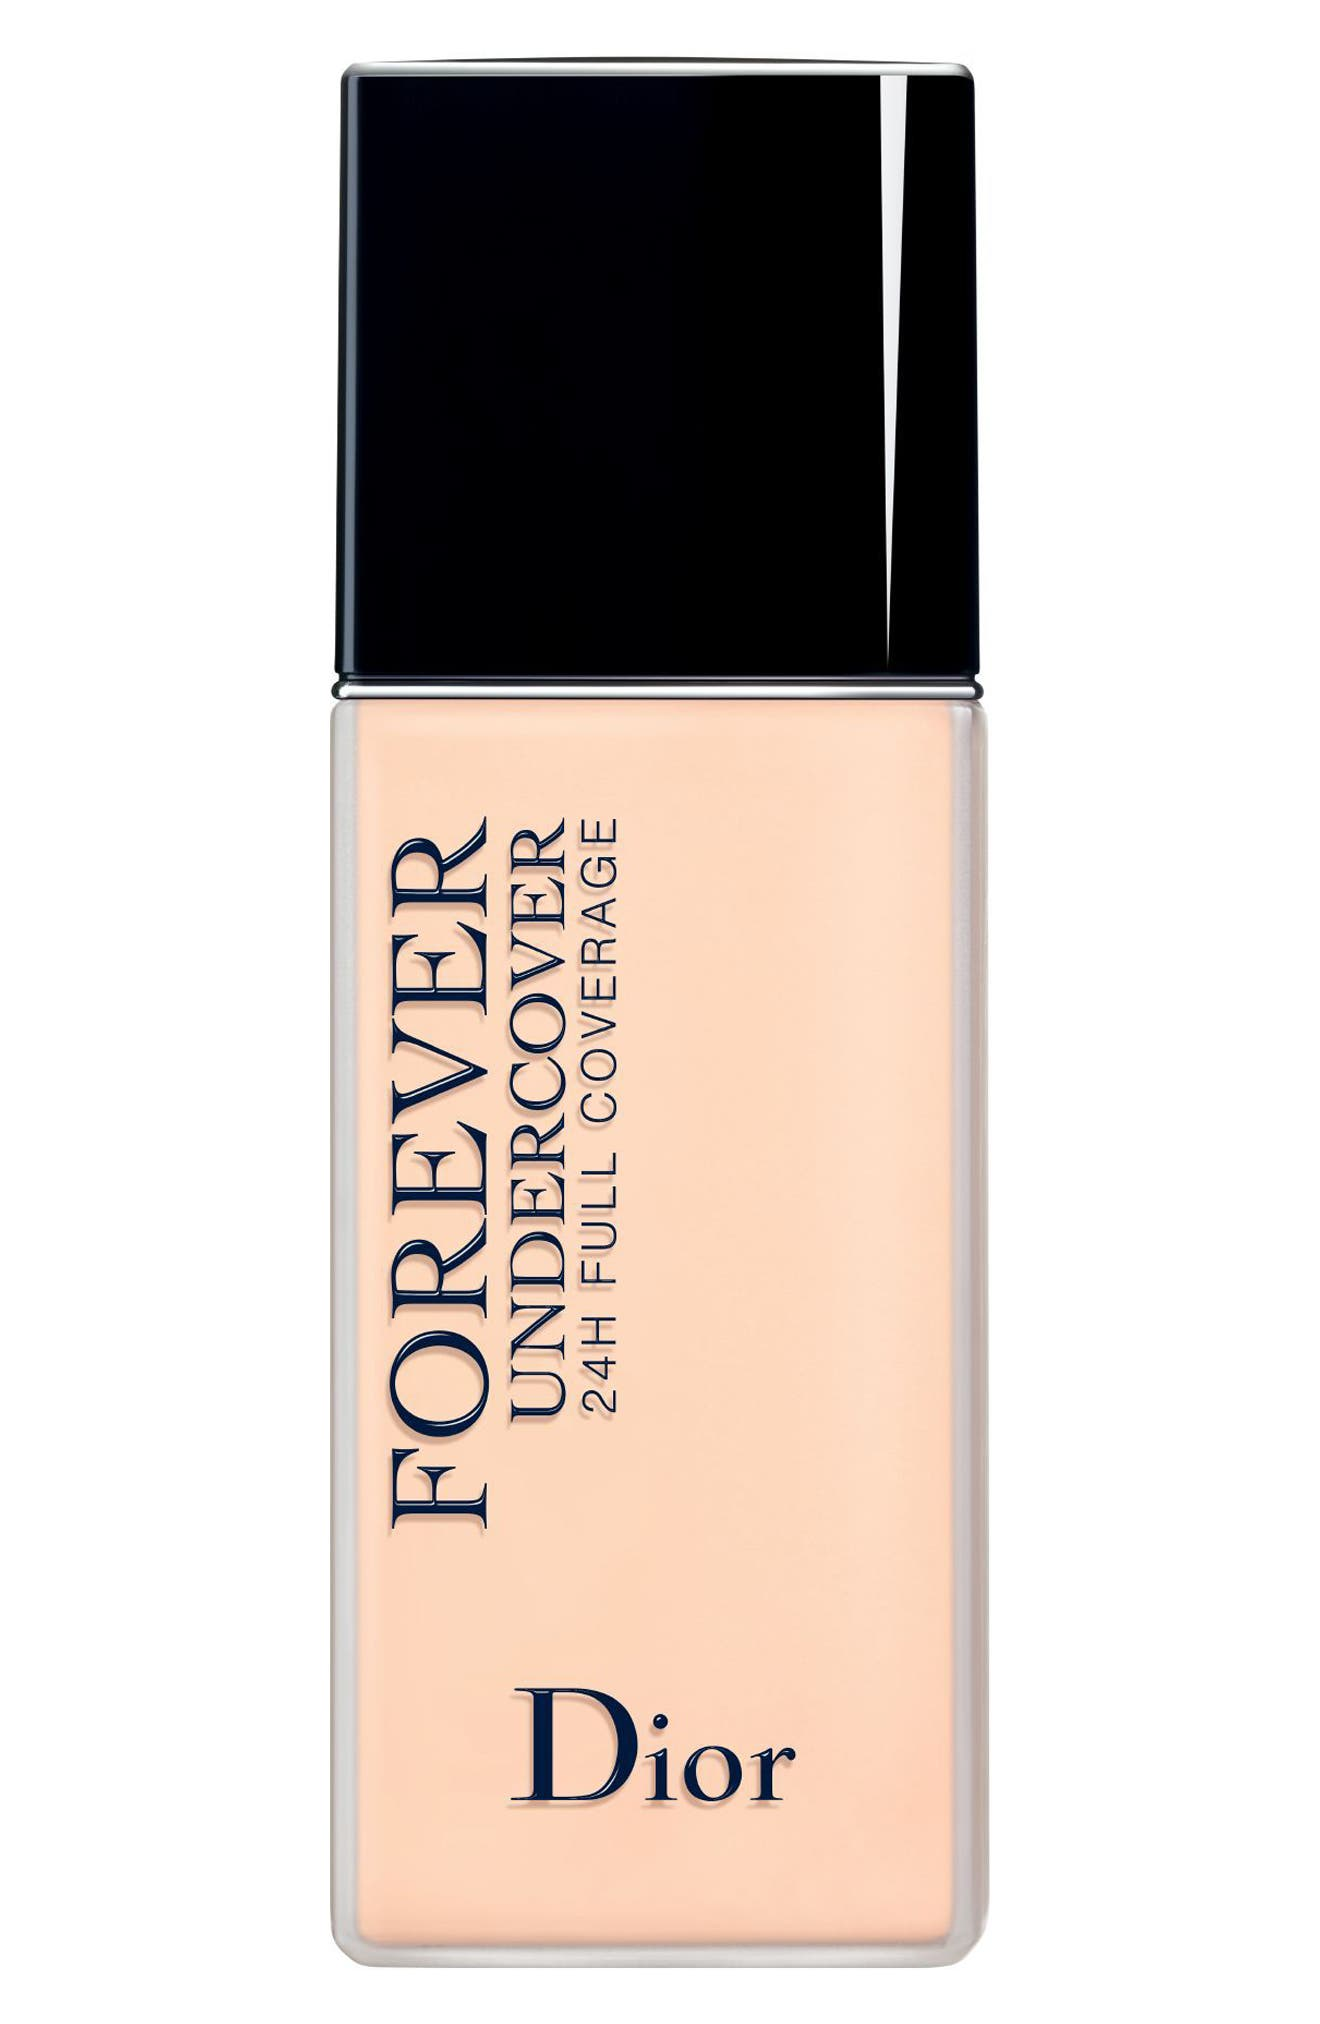 Dior Diorskin Forever Undercover 24-Hour Full Coverage Water-Based Foundation - 010 Ivory